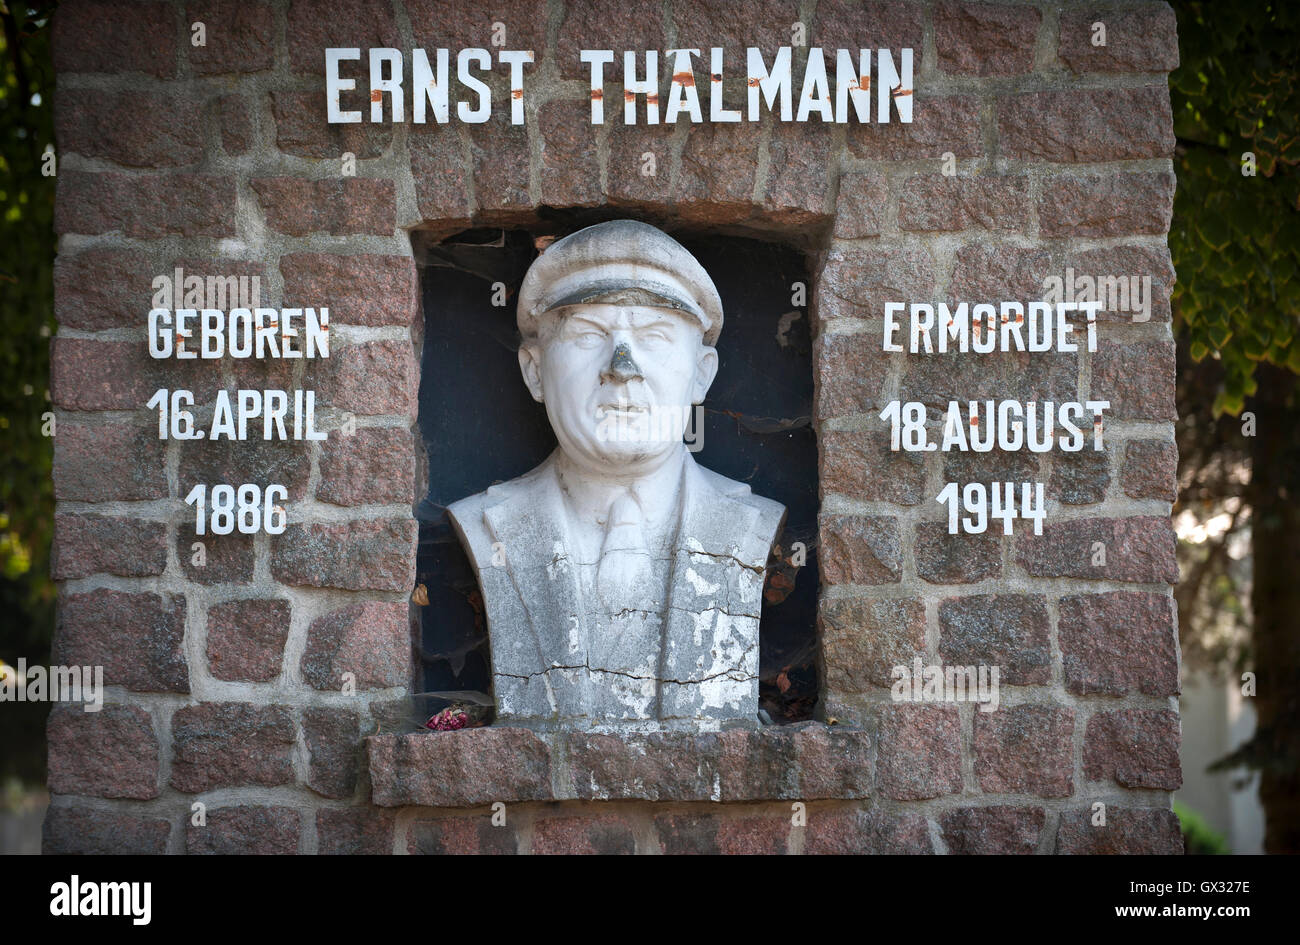 Monument in memory of Ernst Thälmann the murdered leader of the Communist Party in Germany in WW2. East Germany. - Stock Image